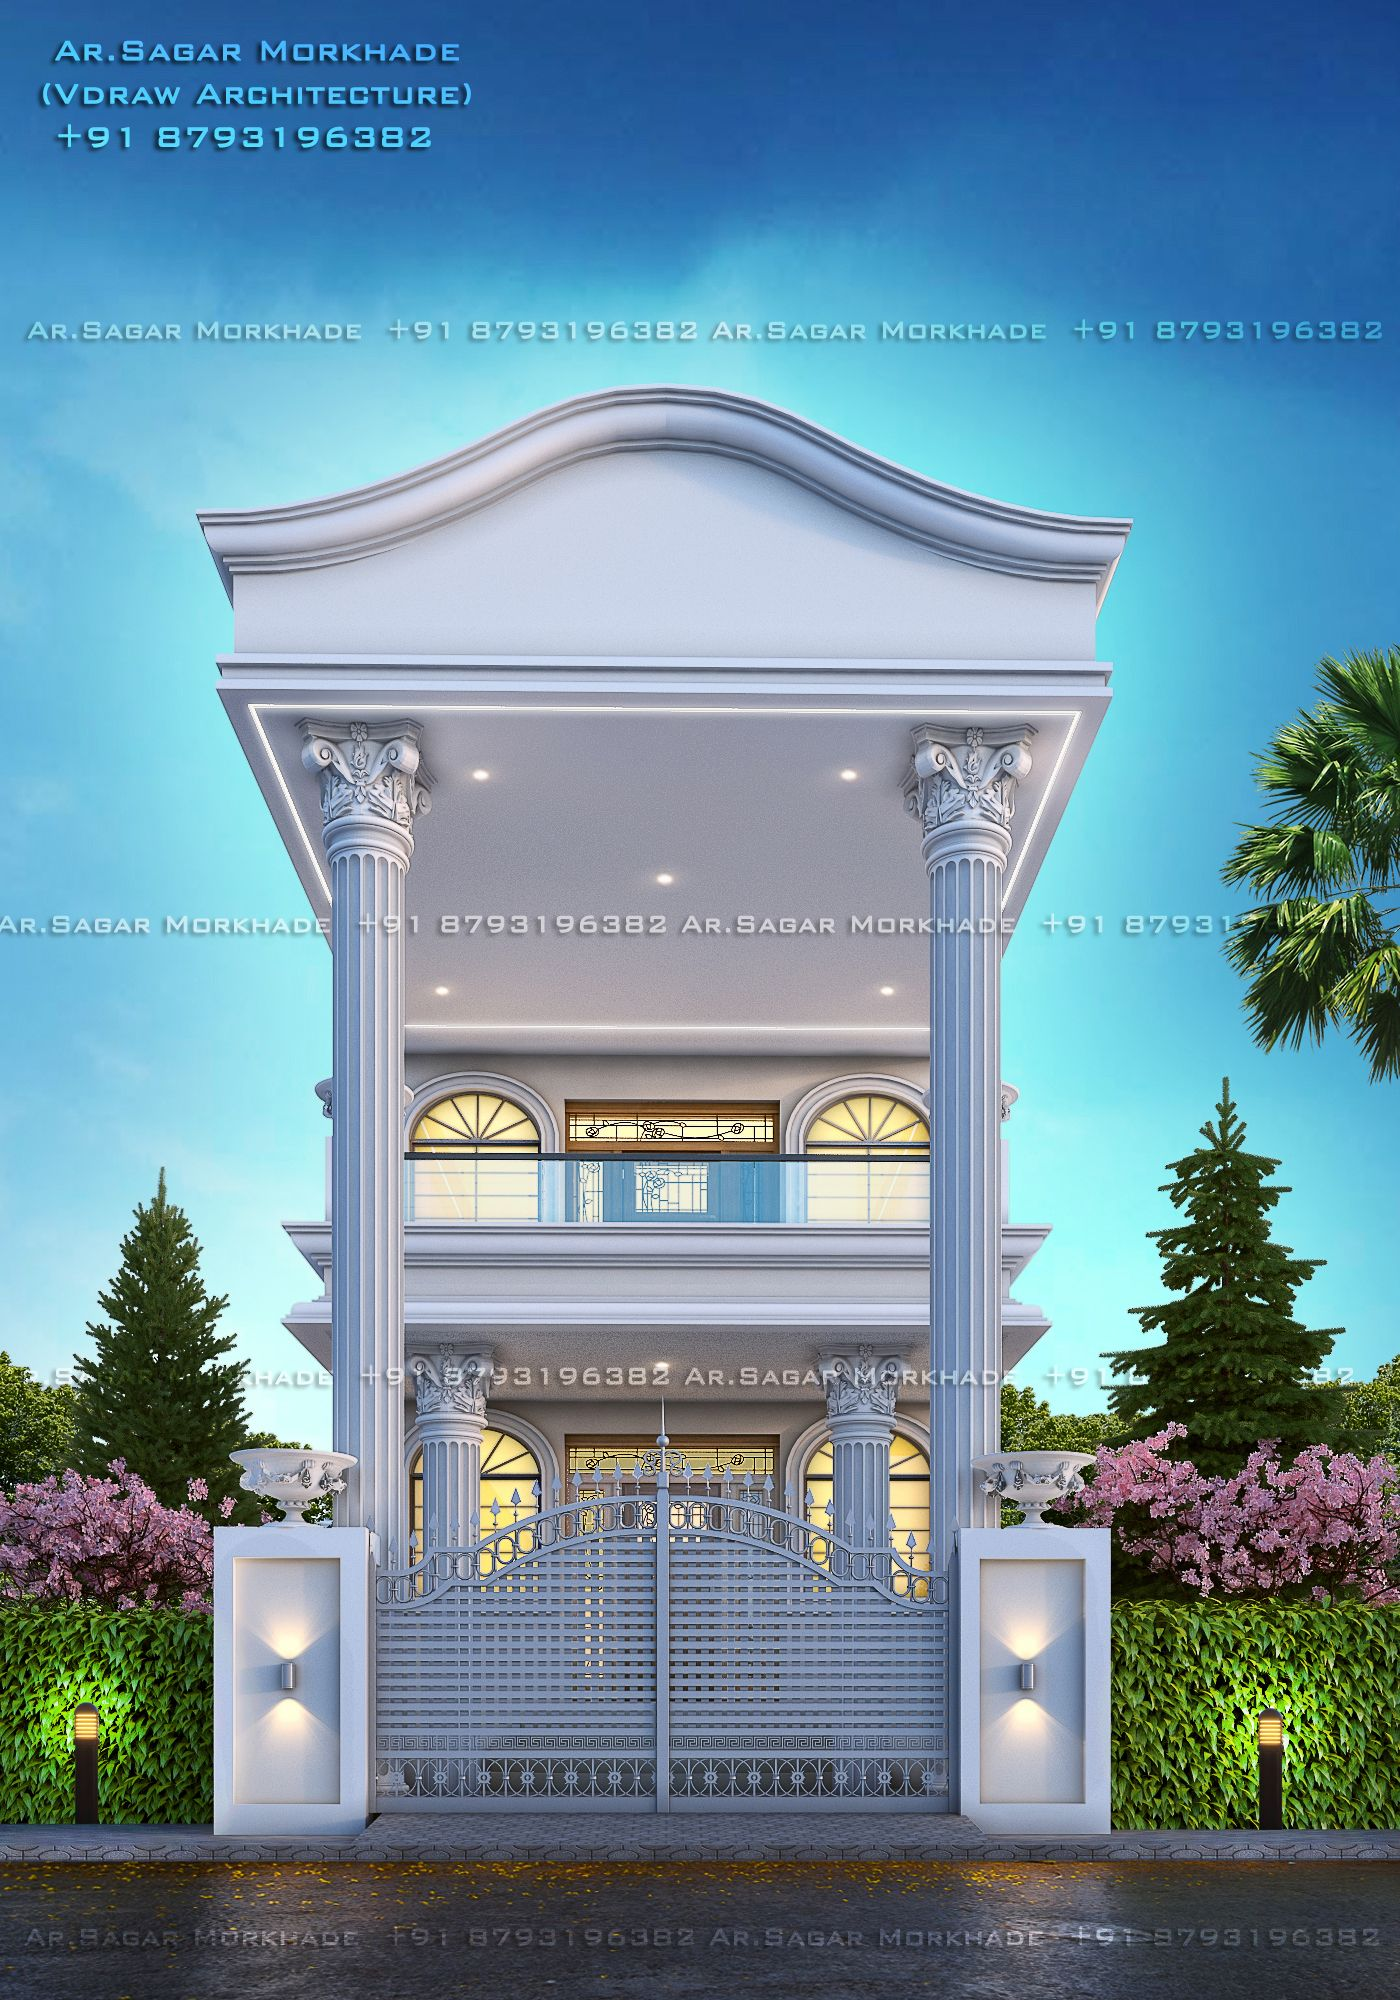 Modern House Bungalow Exterior By Ar Sagar Morkhade Vdraw Architecture 91 8793196382: #Modern #Residential #House #bungalow #Exterior By, Ar.Sagar Morkhade (Vdraw Architecture